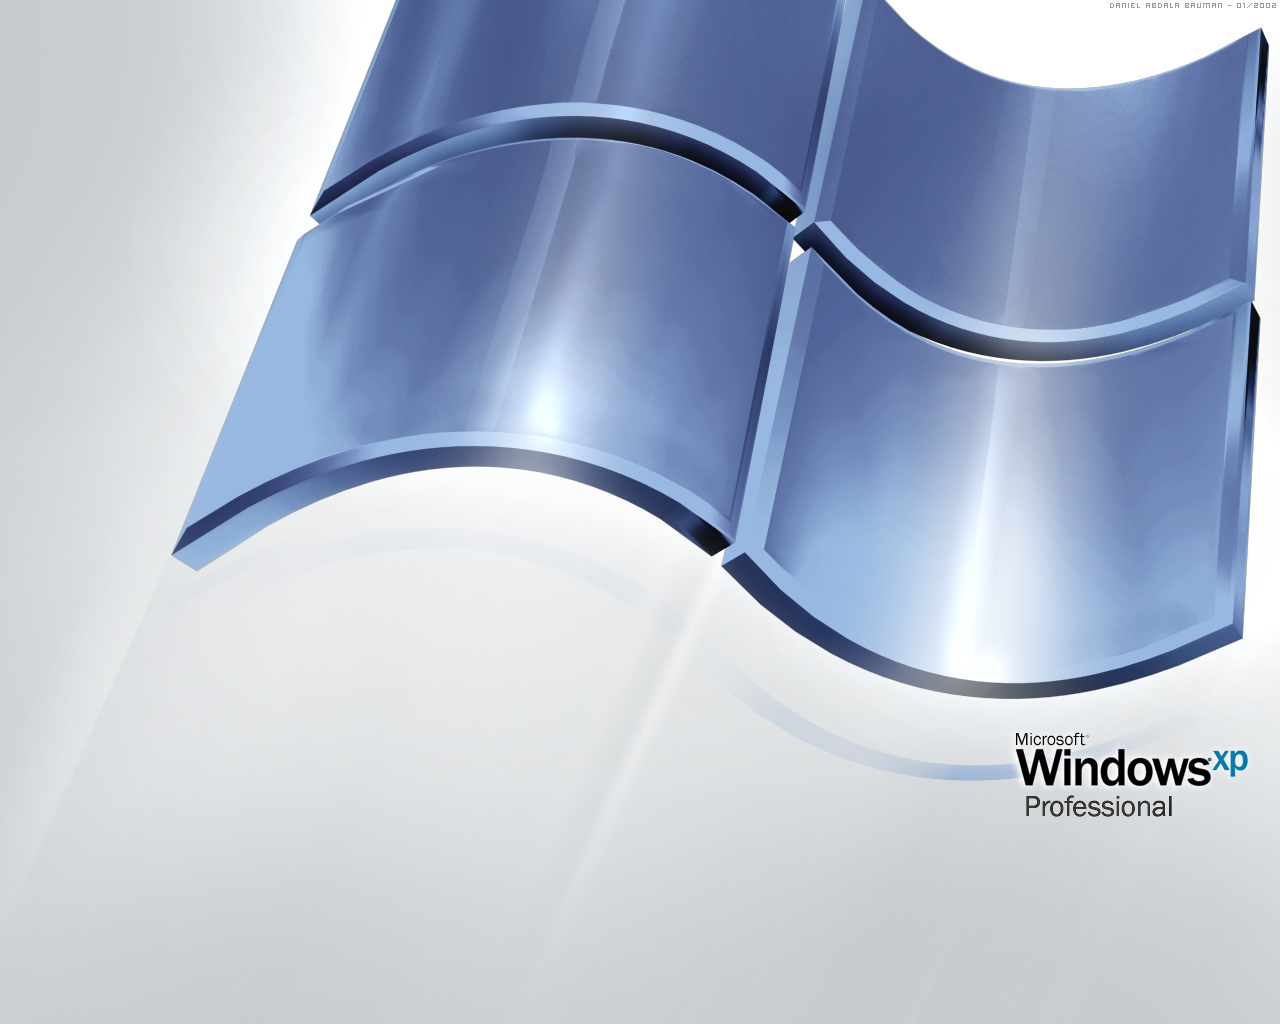 windows xp desktop wallpaper location   weddingdressincom 1280x1024